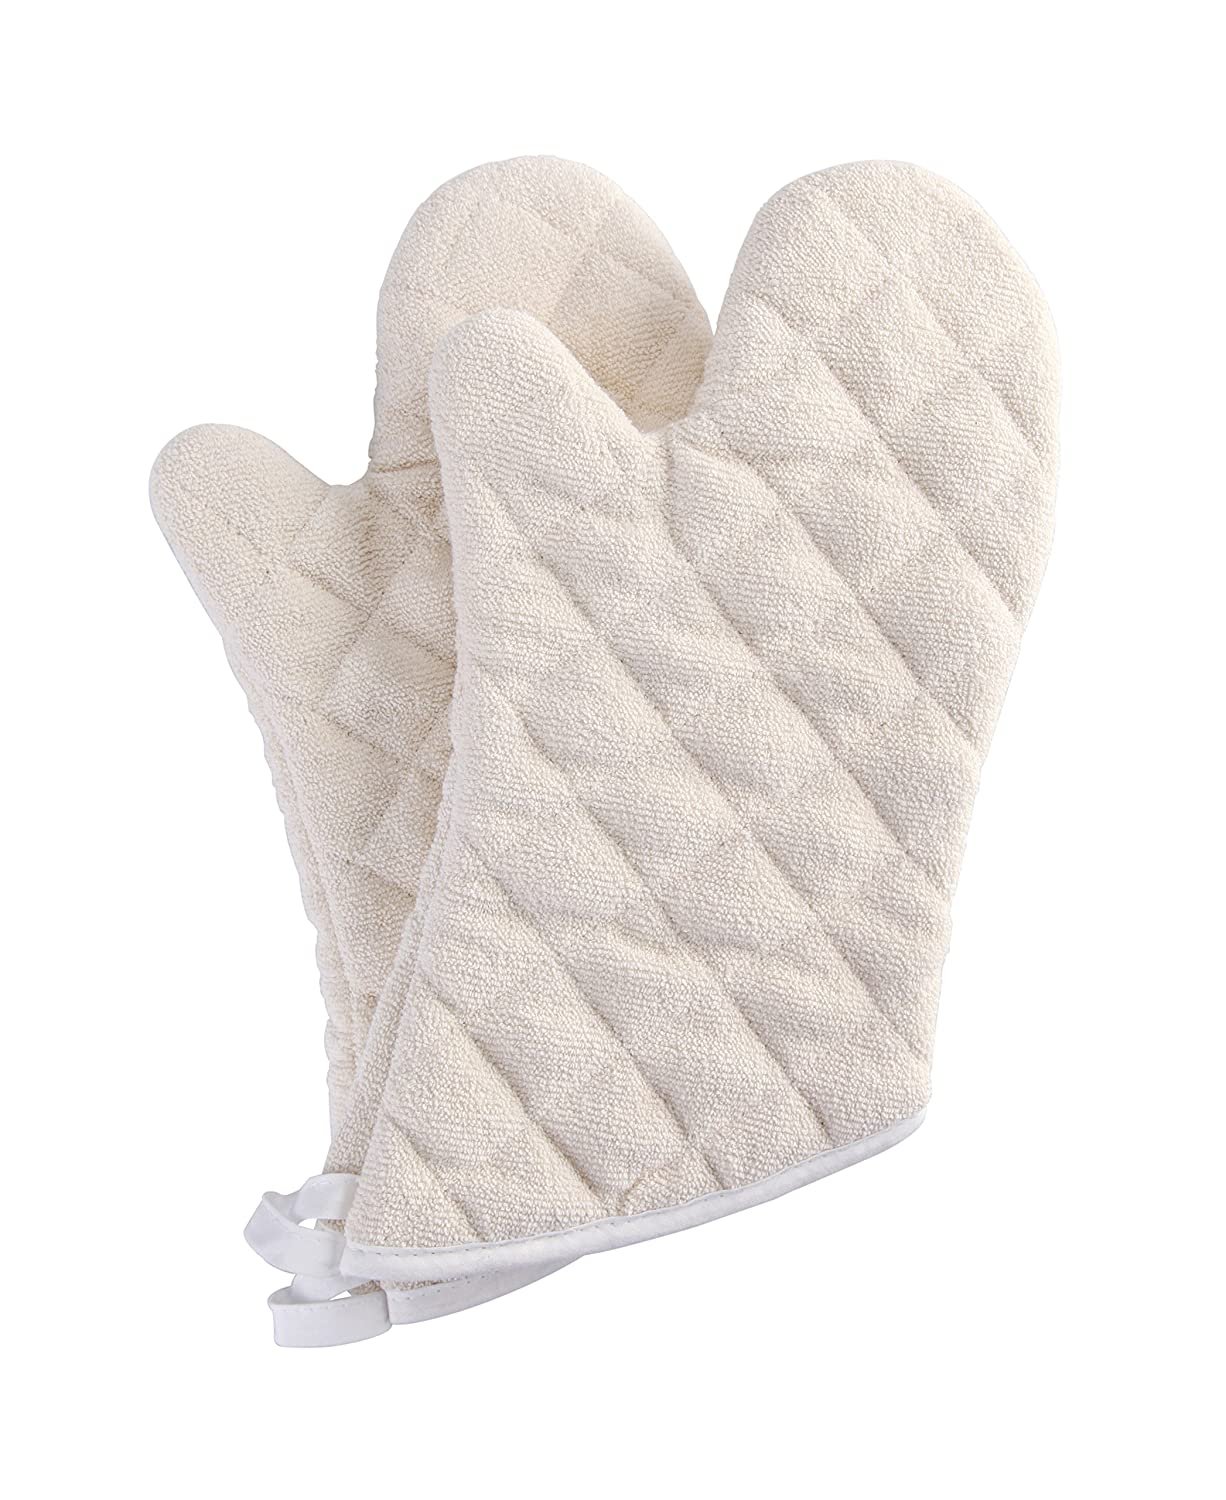 Terry Cloth Oven Mitts Heat Resistant to 482° F 15 Inch 100% Cotton Set of 2